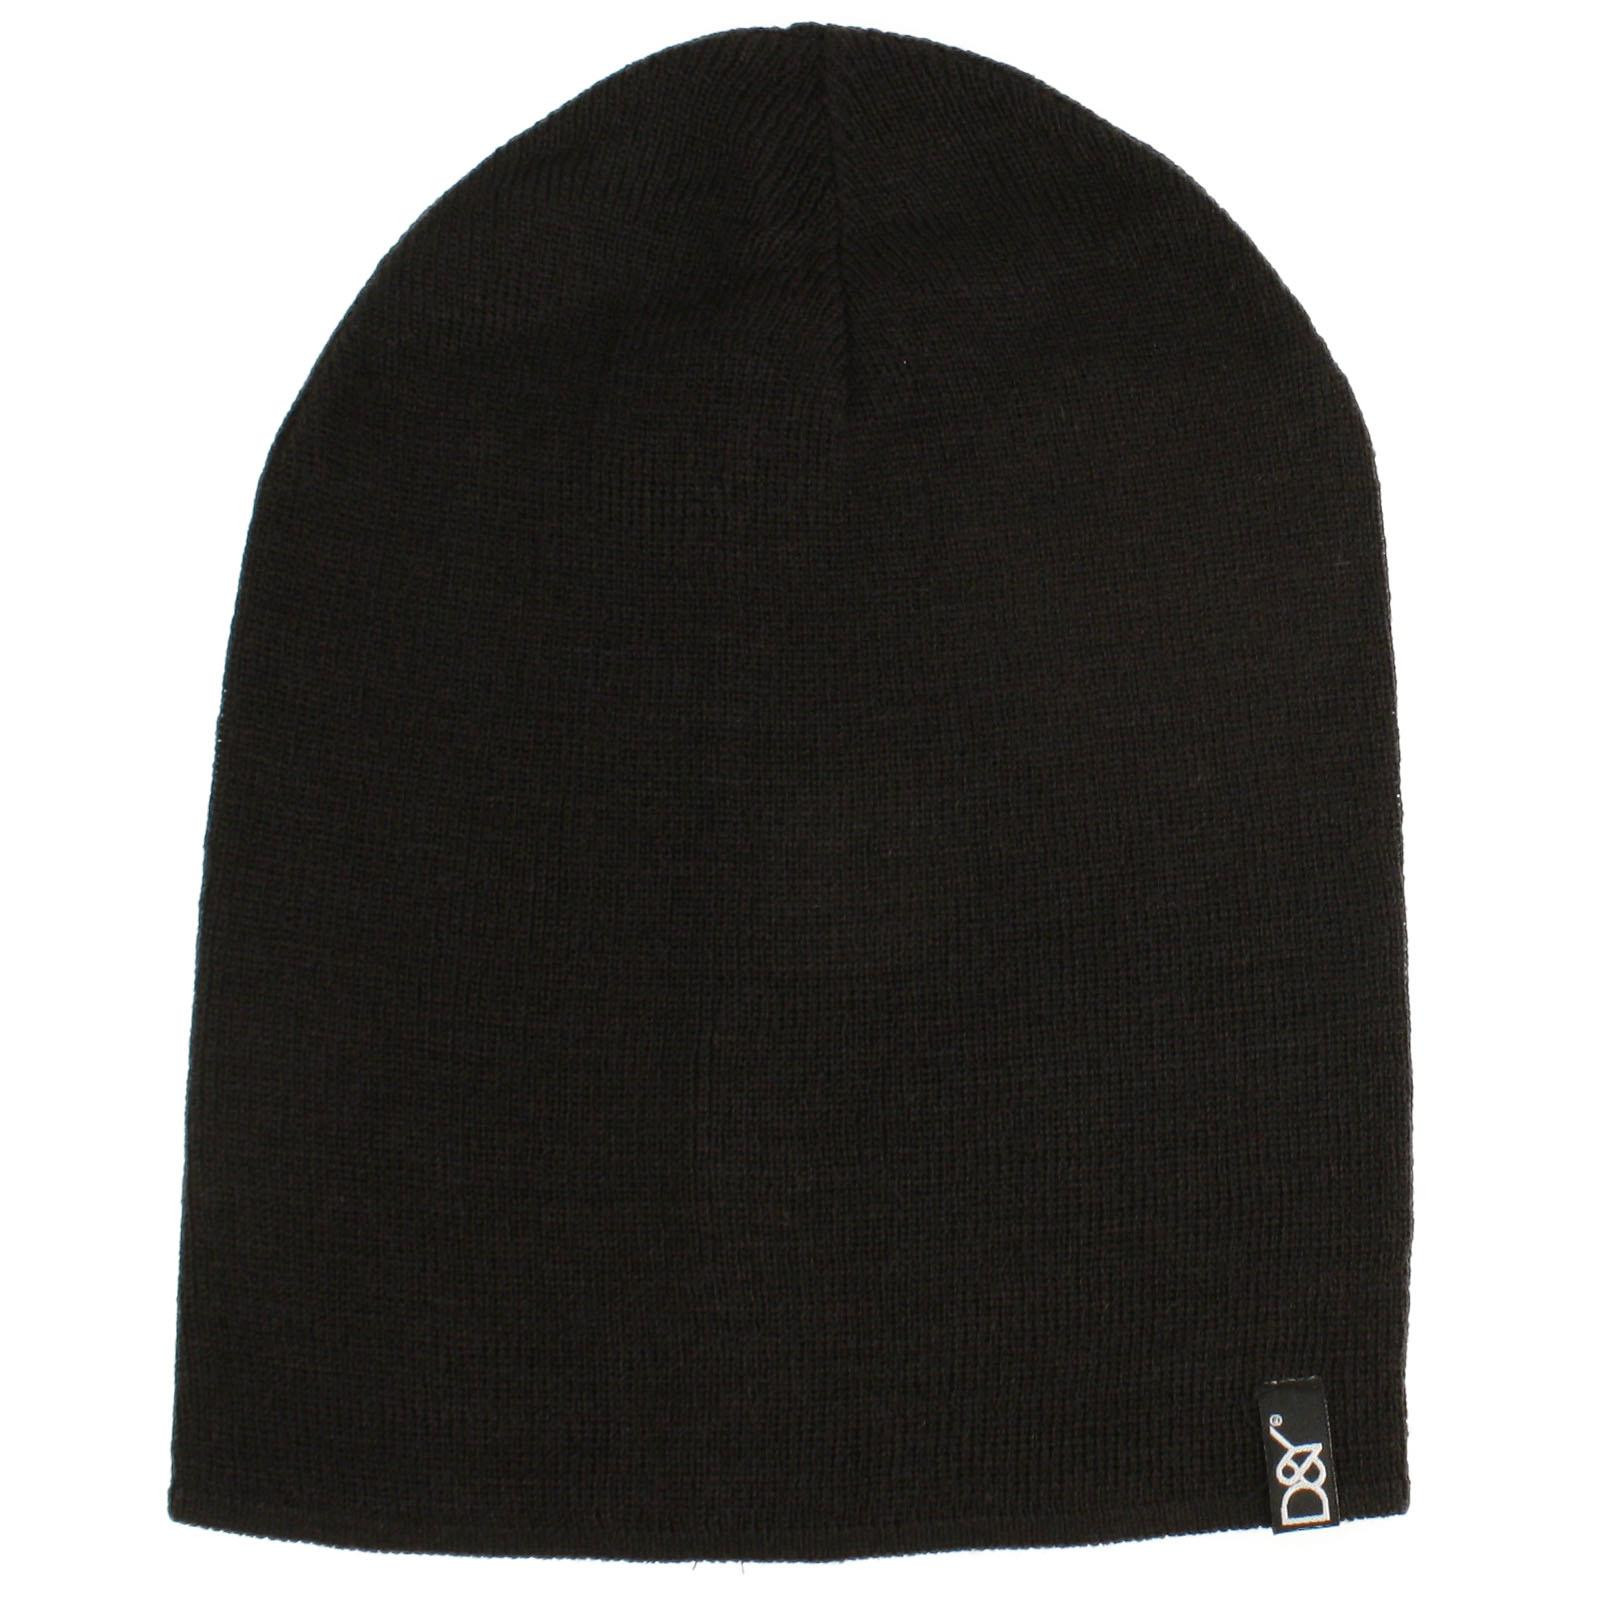 Uni Soft Thin Stretchy Knit Long Beanie Slouchy Slouch